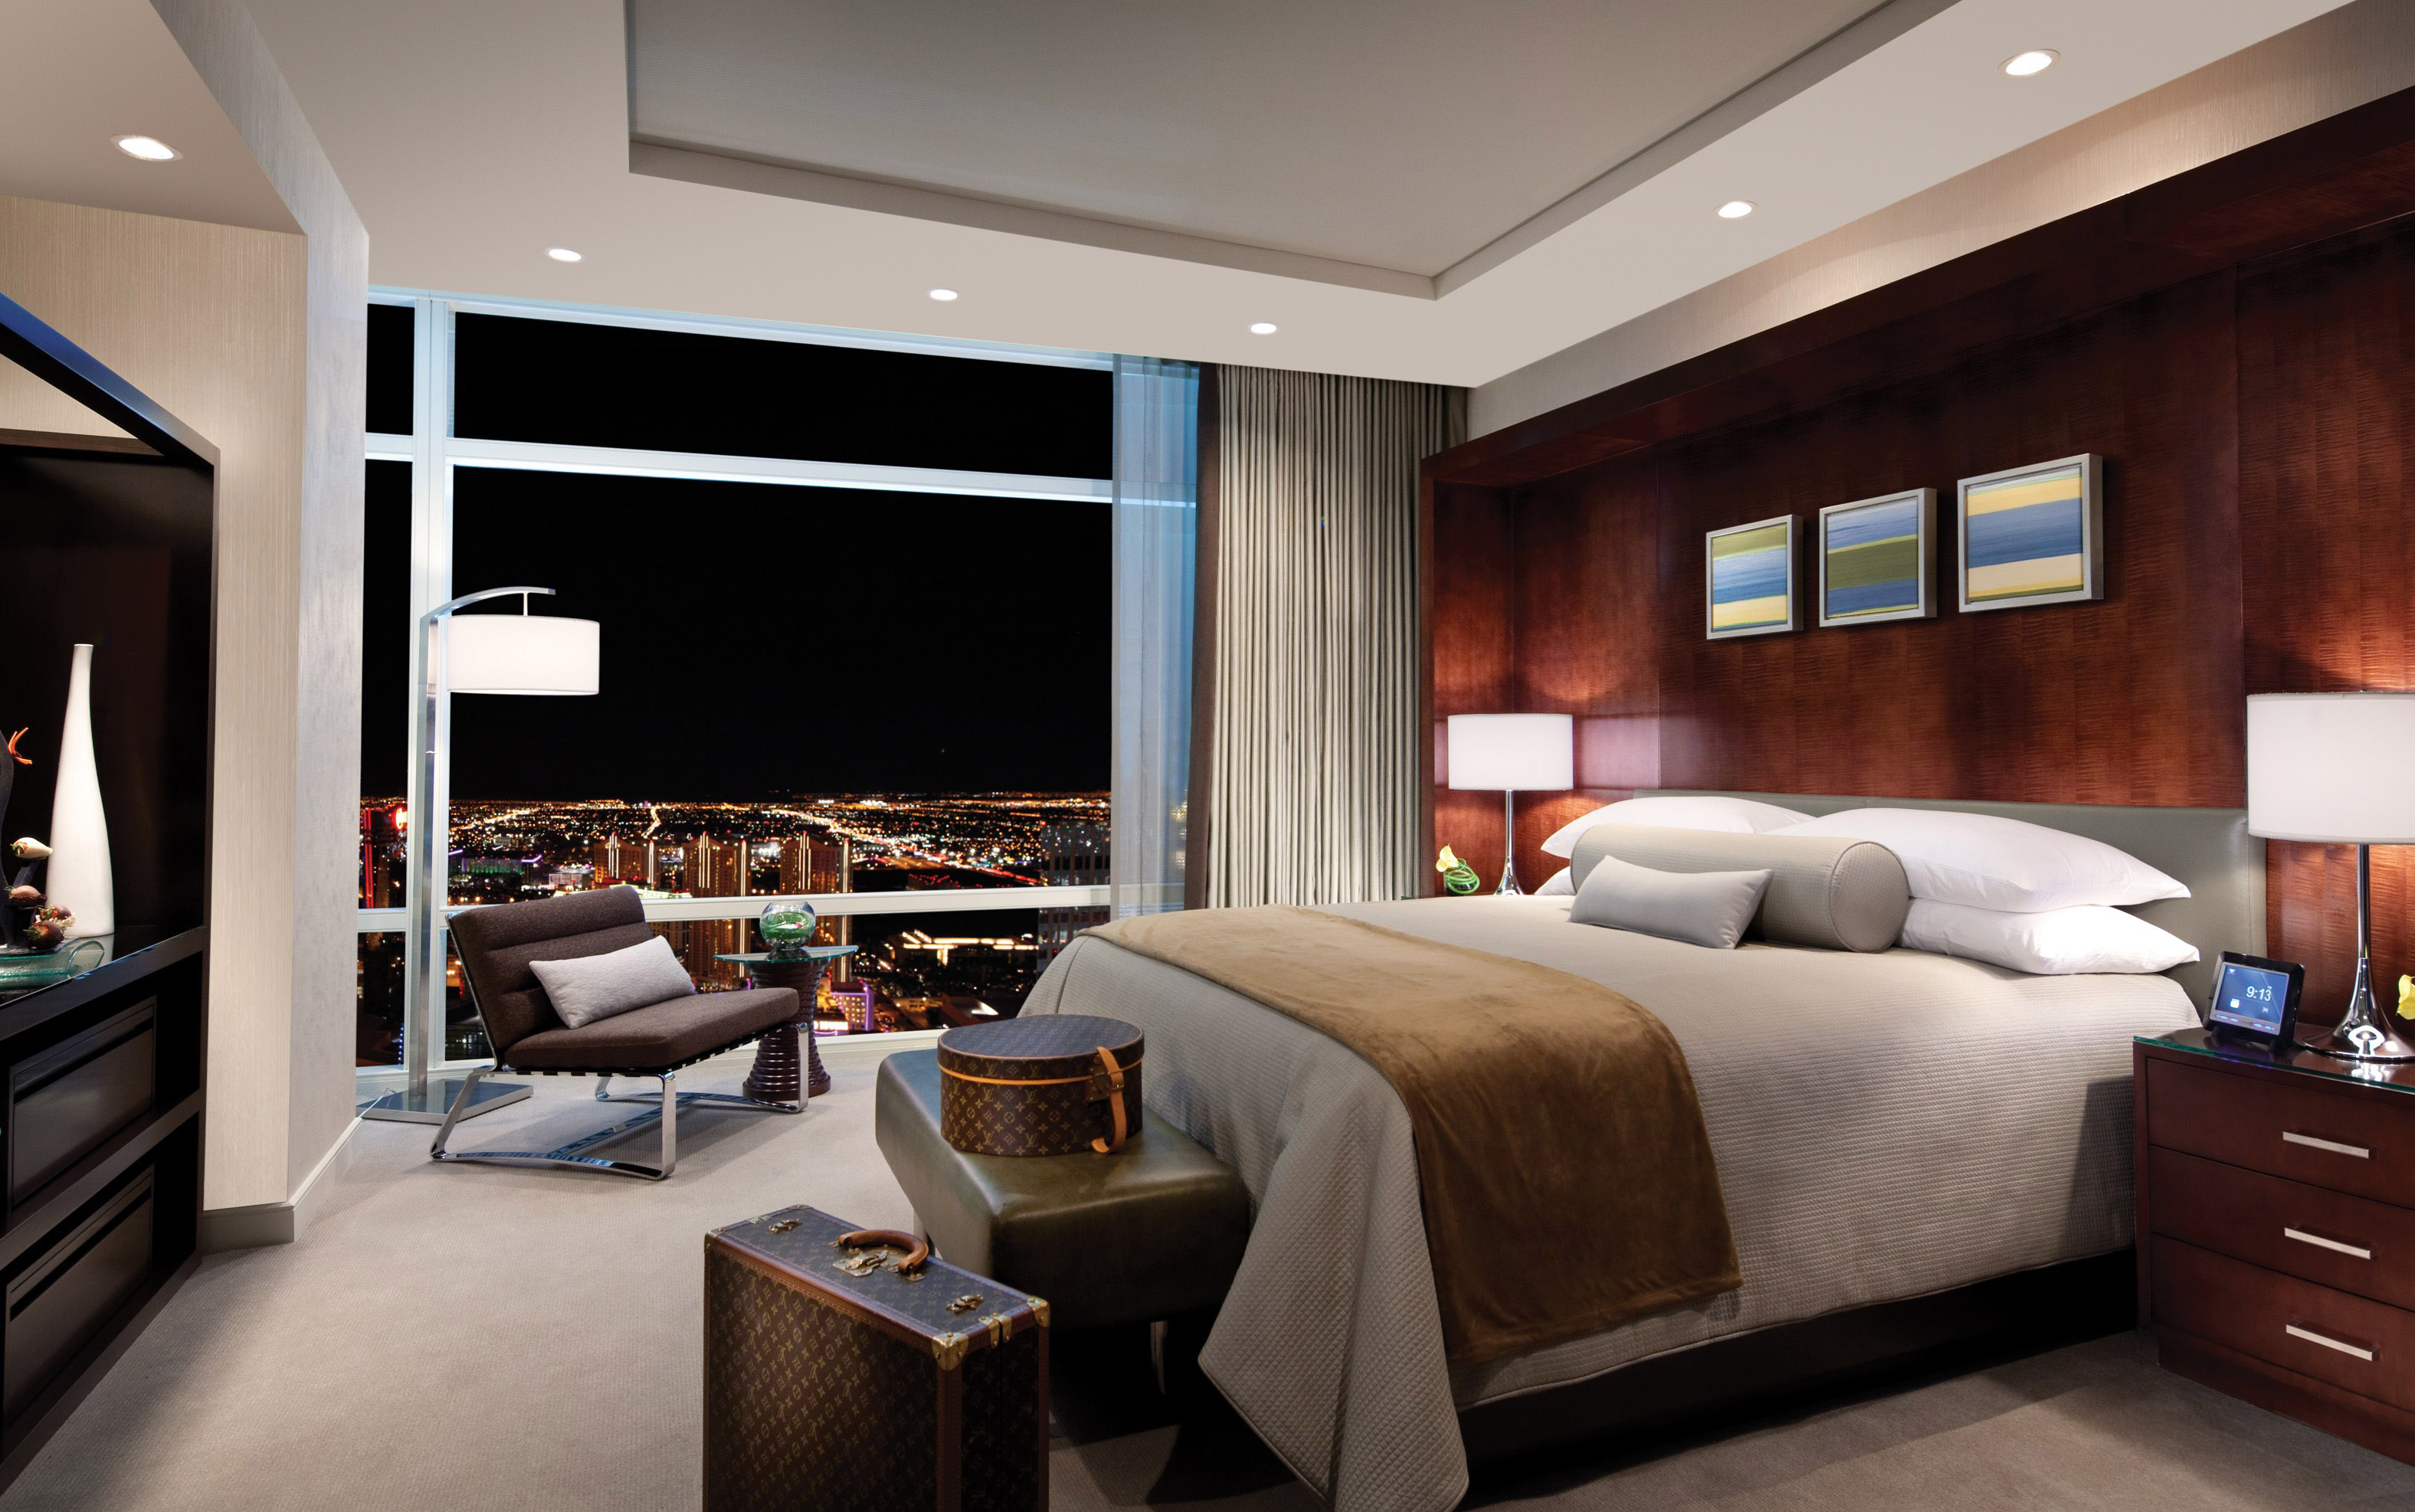 Sky suites at aria resort casino earns coveted aaa five for Sky design hotel